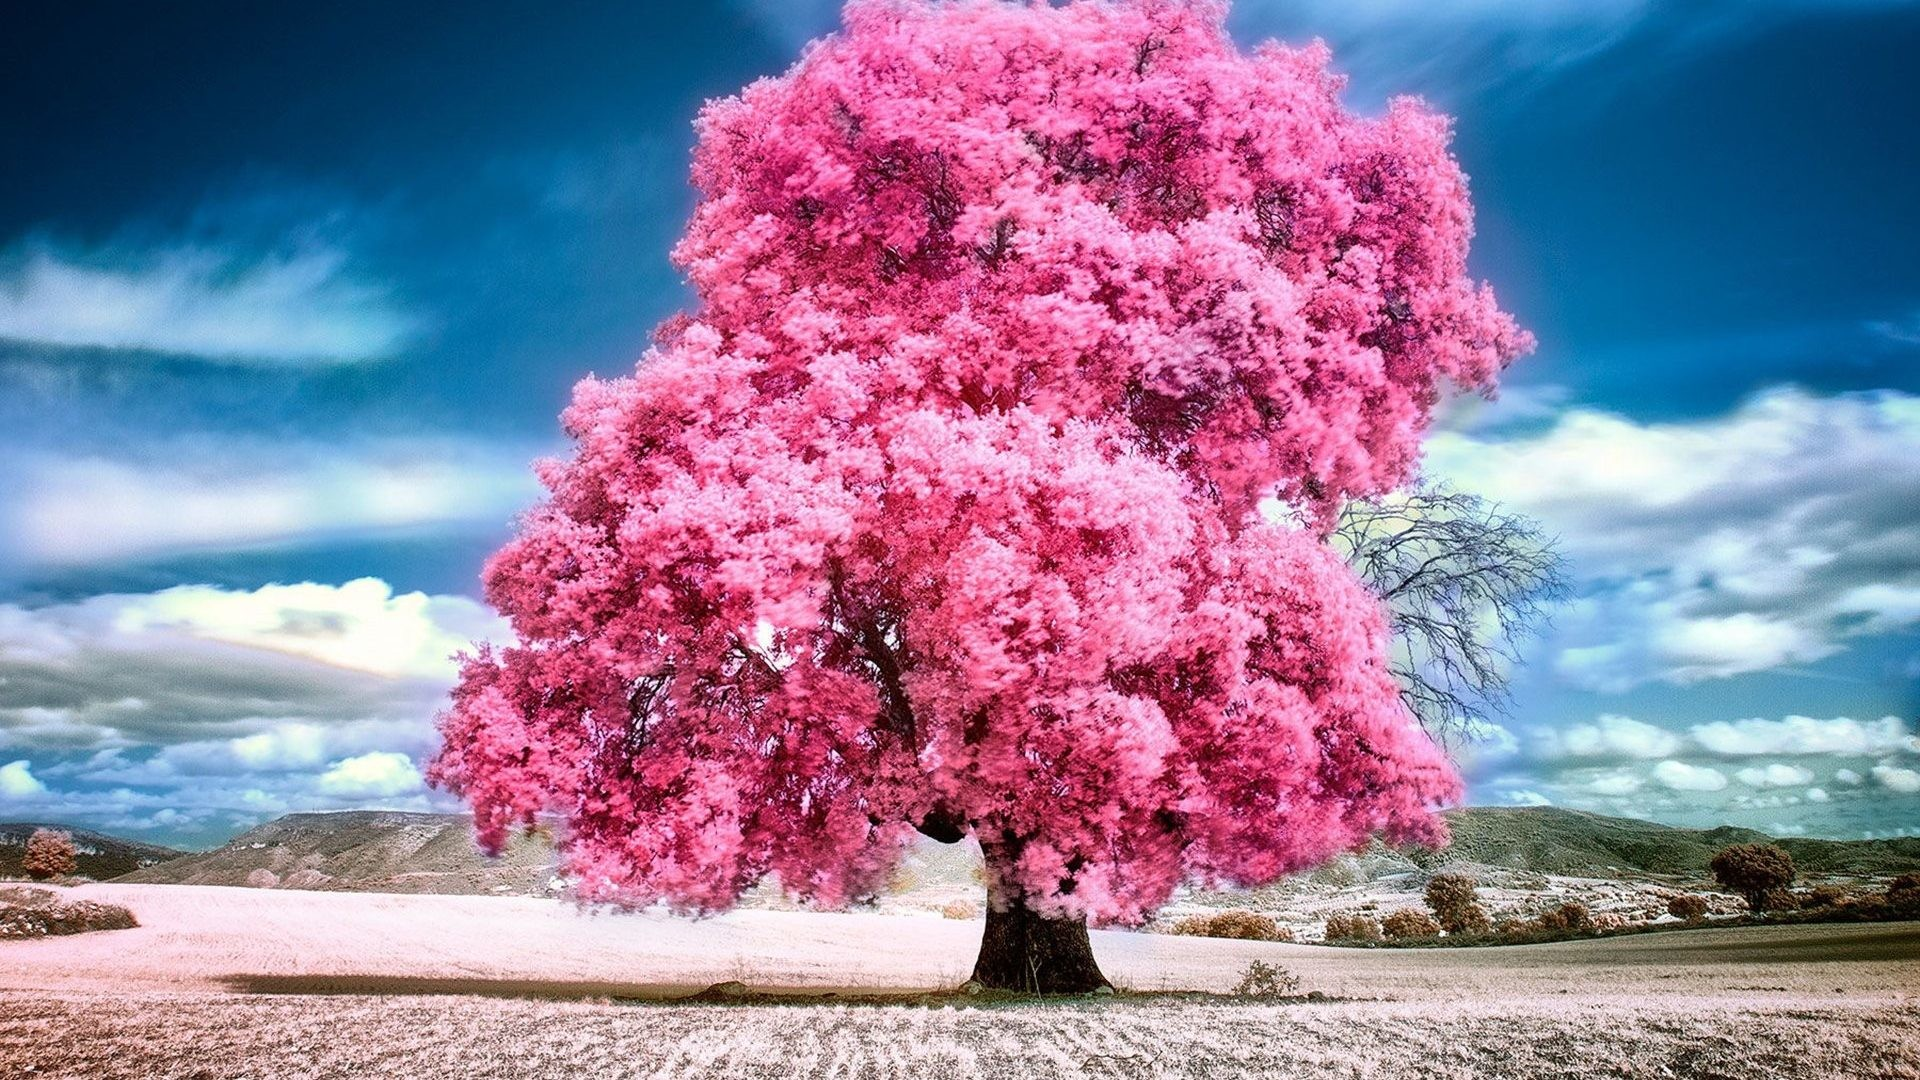 Pink Nature Wallpaper (53+ images) - photo#42